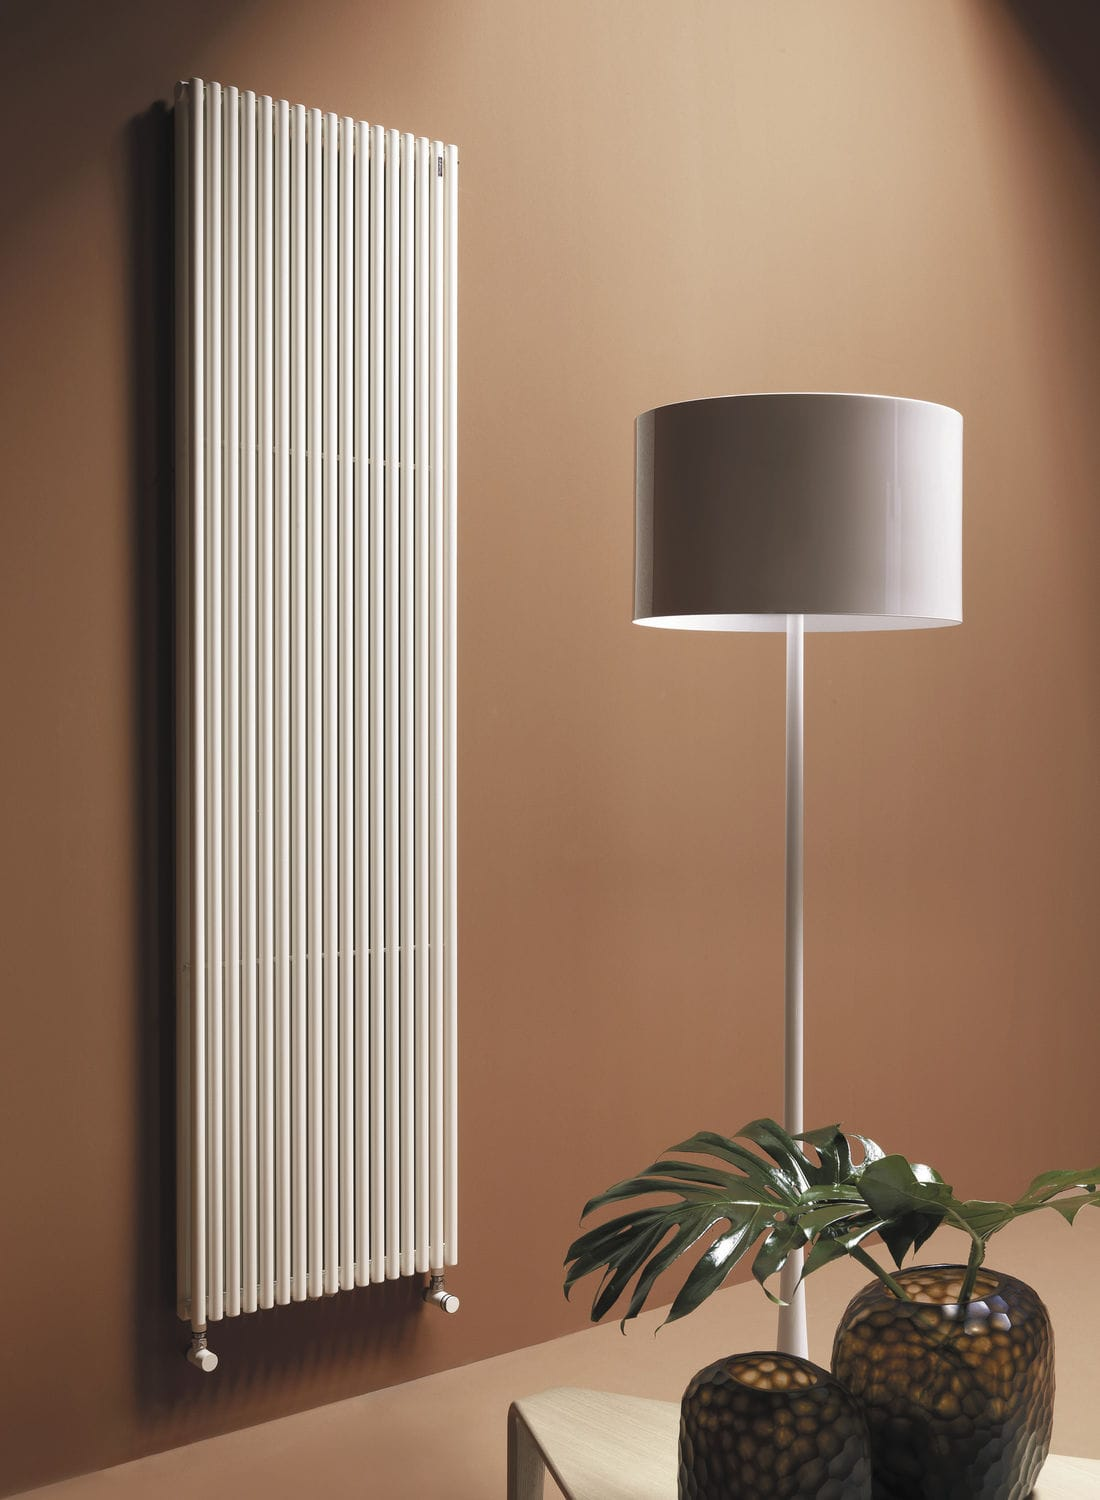 Hot Water Radiator / Steel / Contemporary / Horizontal   BASICS: BASICS25